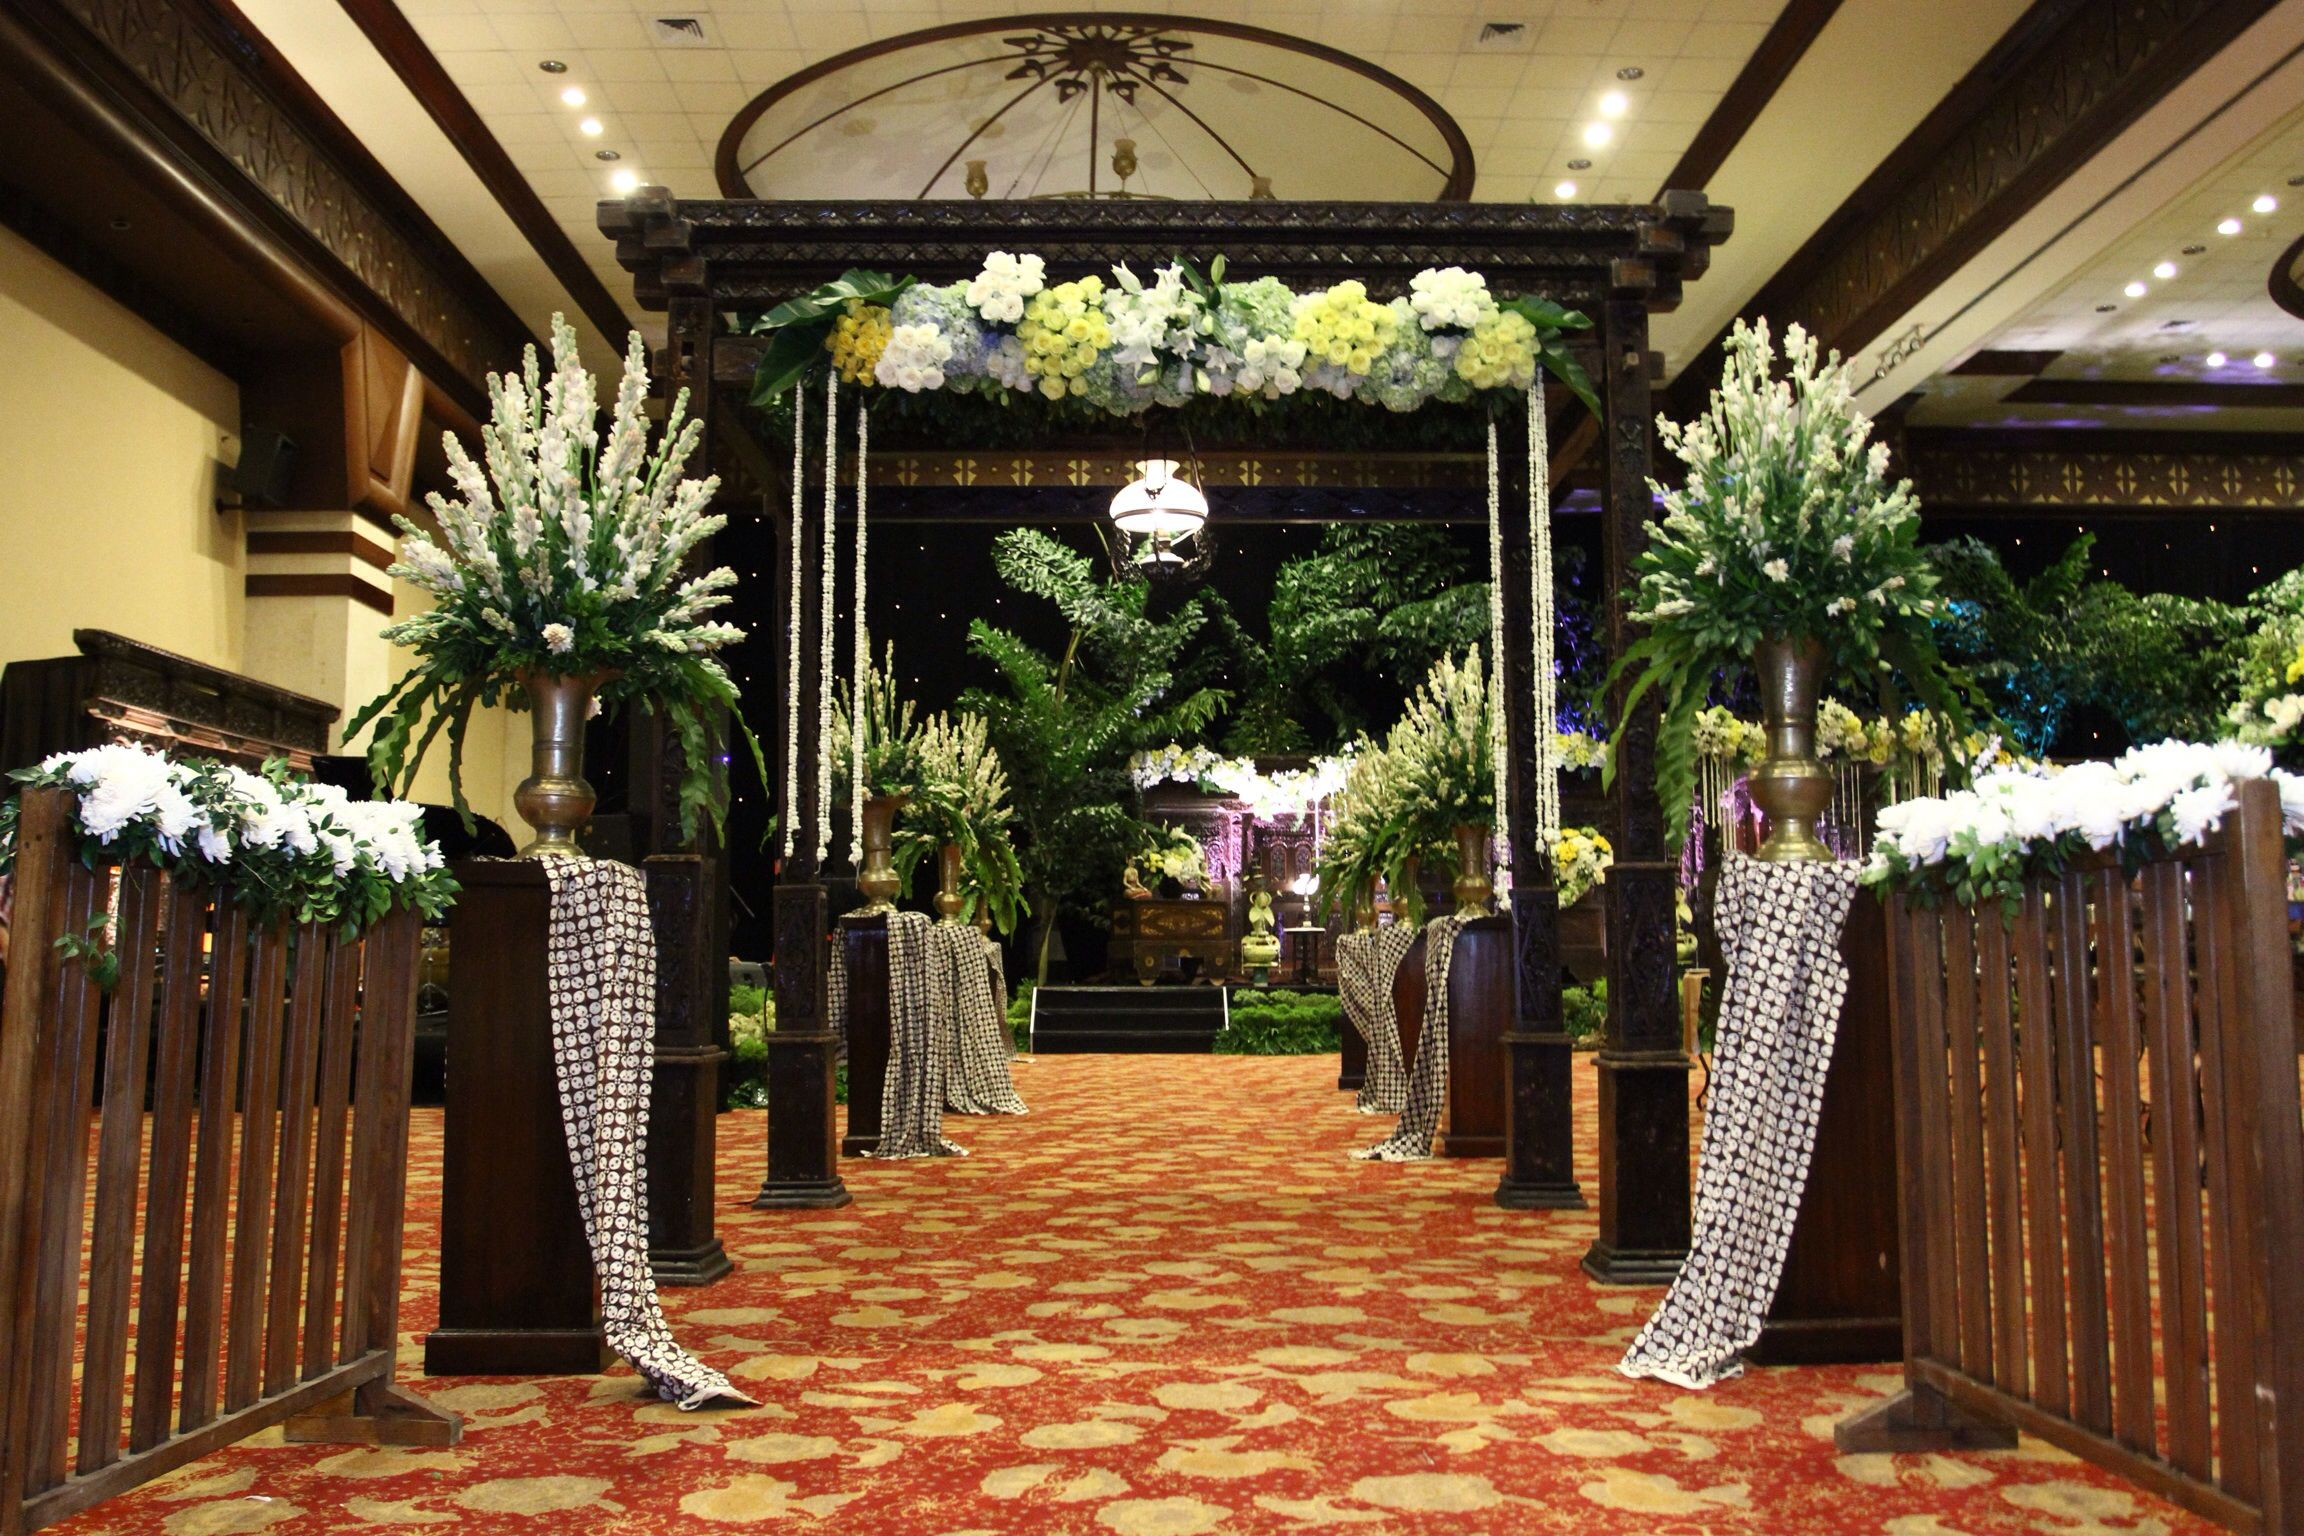 Javanese wedding decor ballroom entrance wedding inspiration javanese wedding decor ballroom entrance junglespirit Images